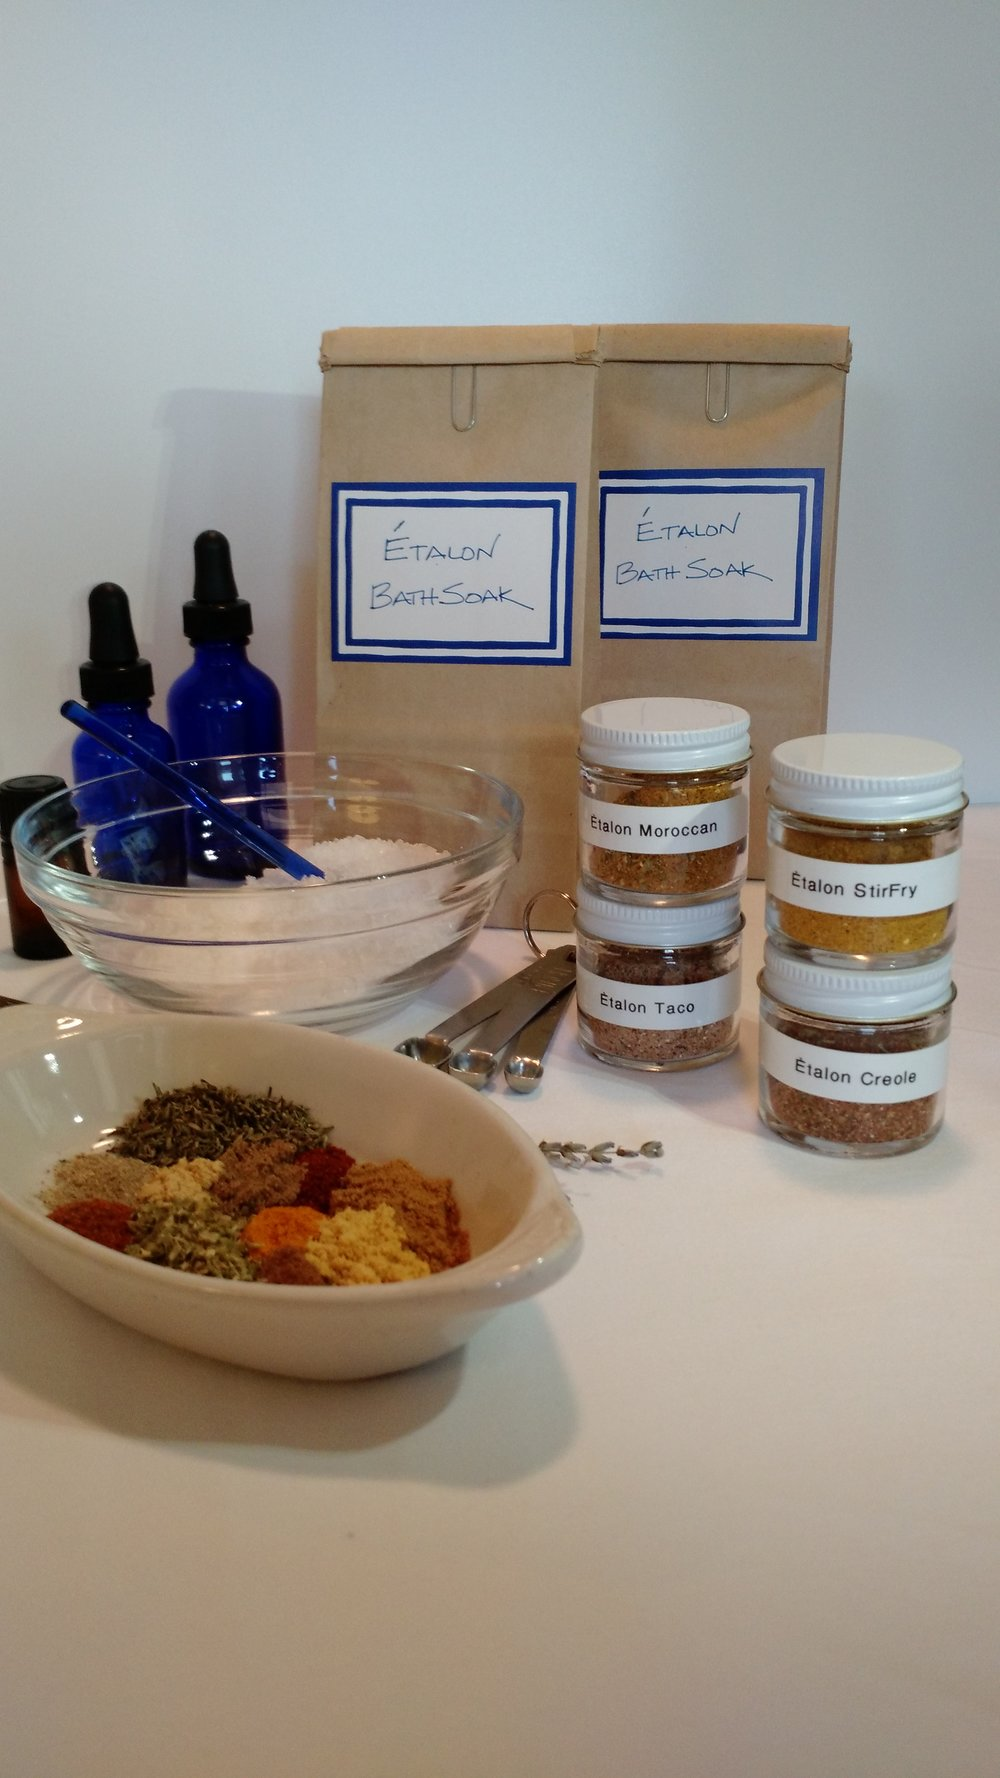 CUSTOM BATH SOAK & SPICE BLENDS